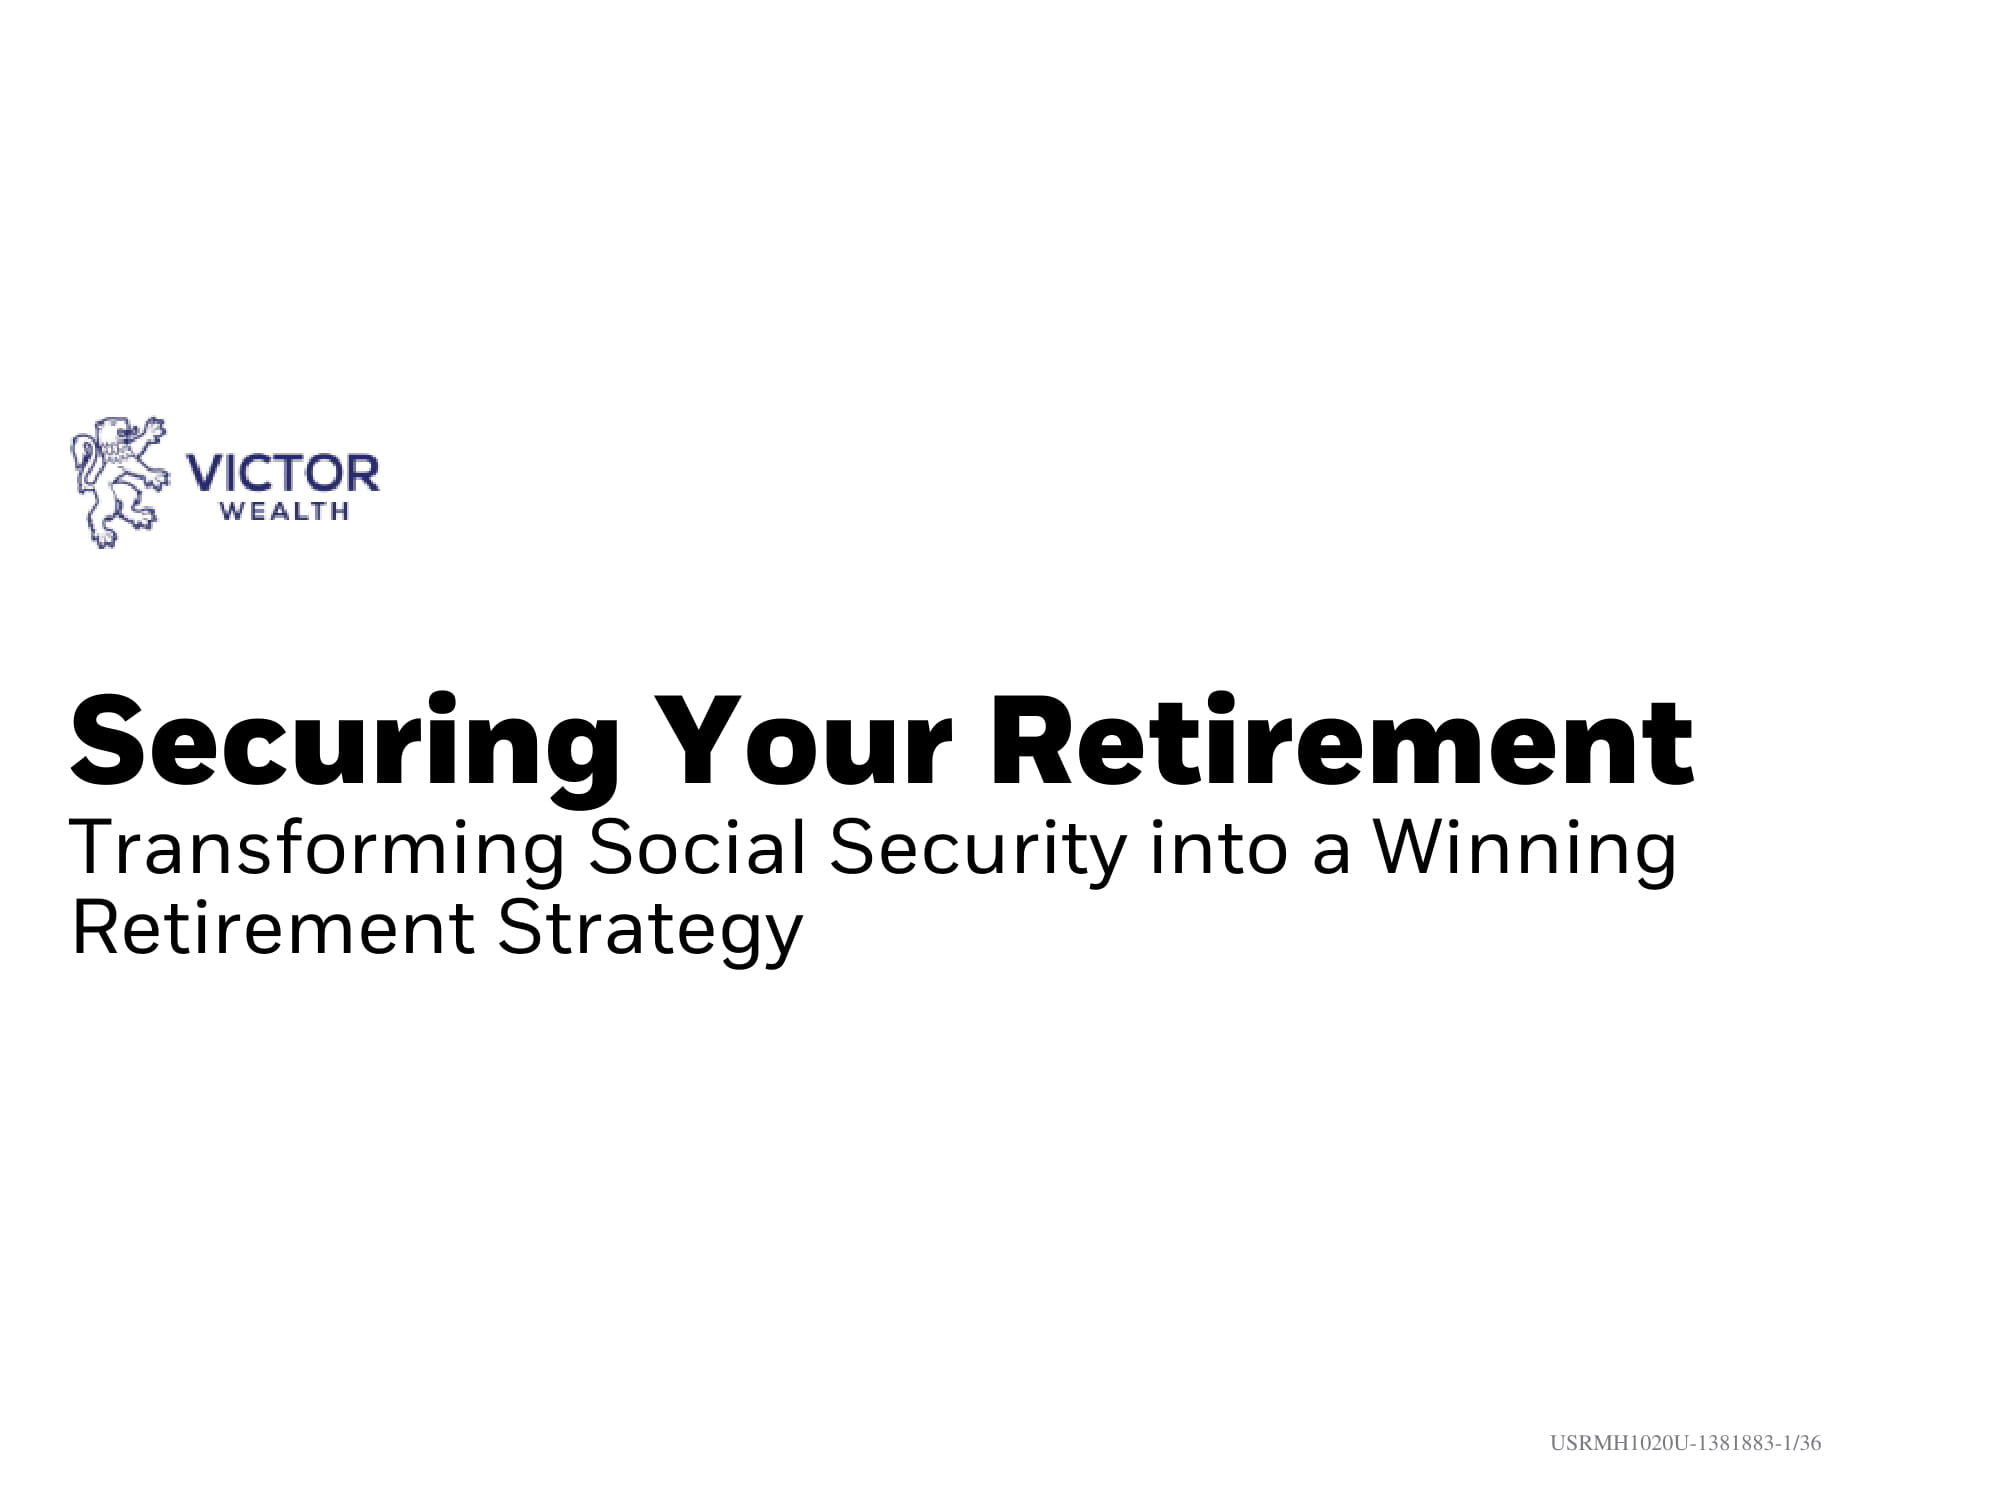 Securing Your Retirement Guide